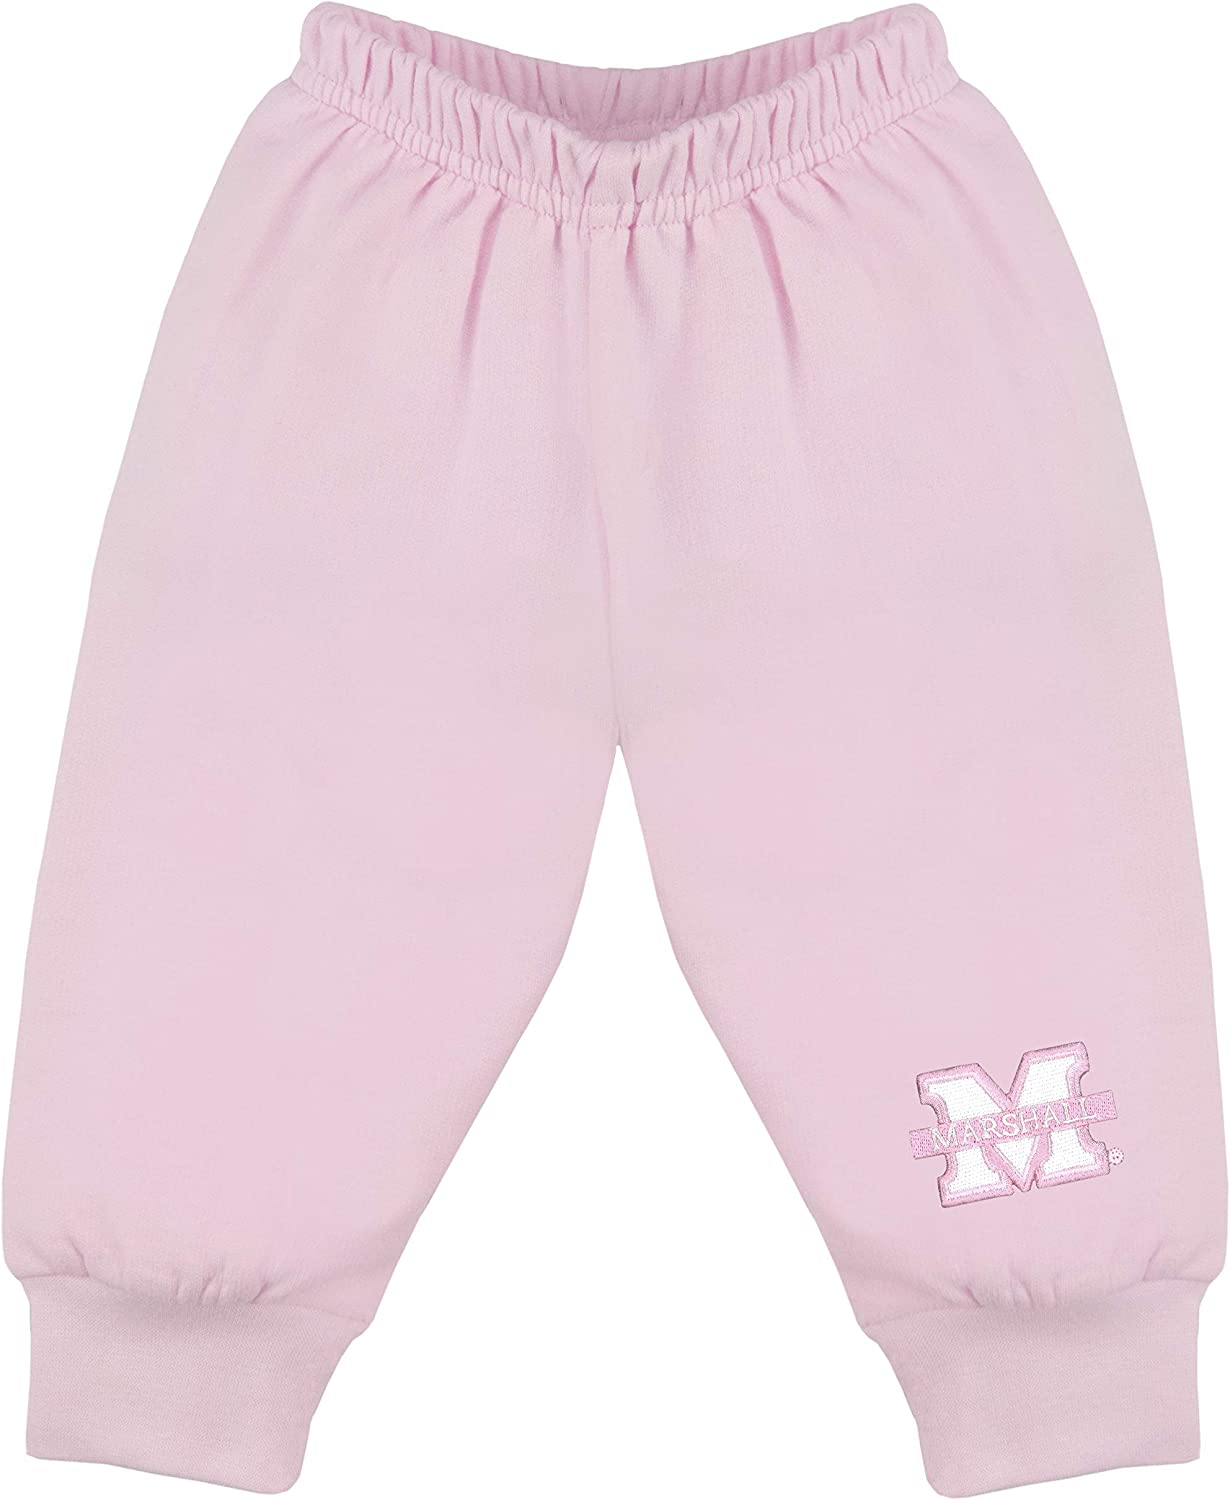 Creative Knitwear Marshall University discount Baby Pan Special sale item Sweat and Toddler